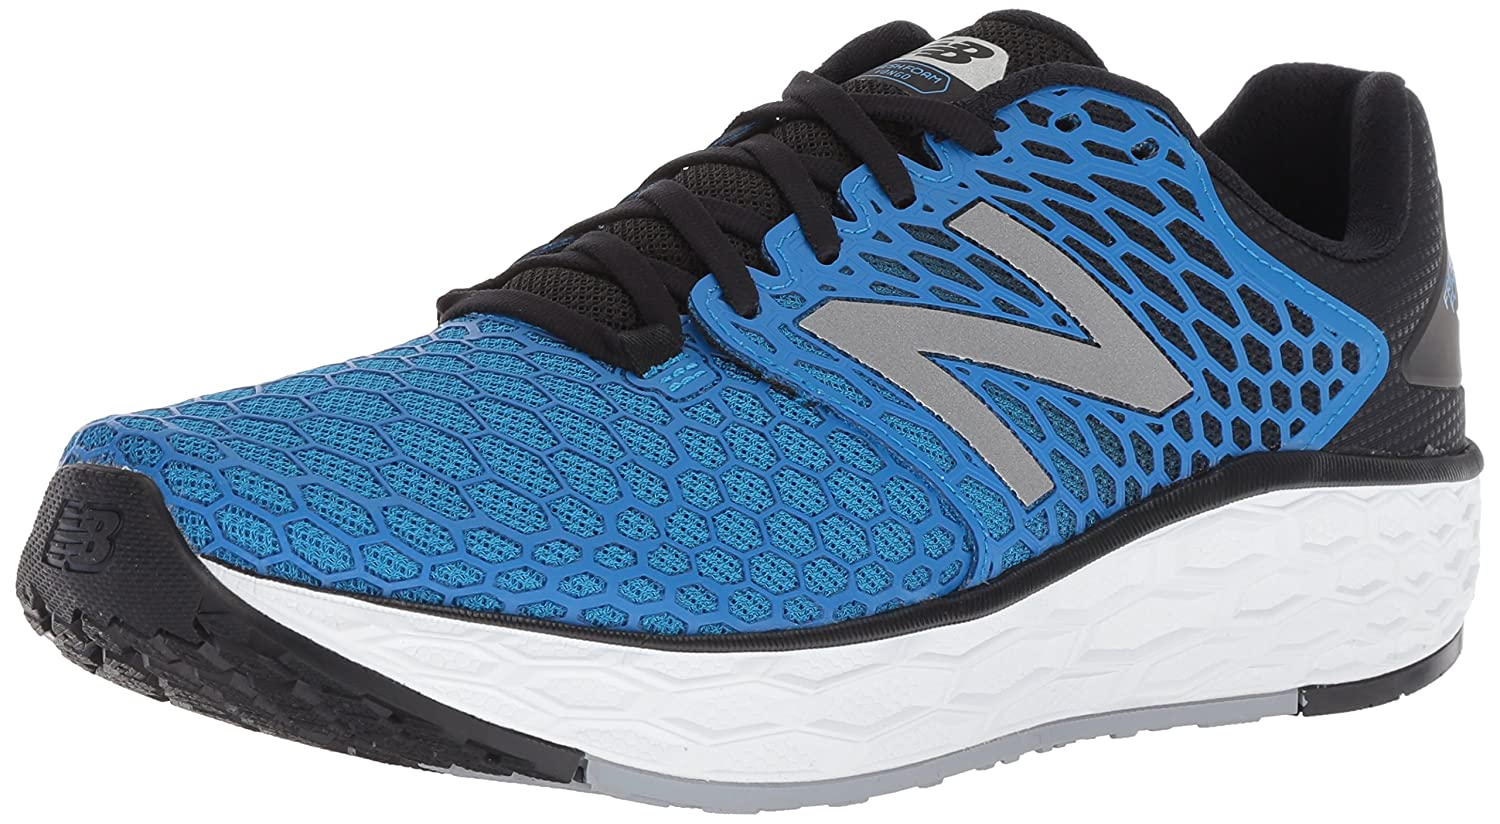 New Balance Fresh Foam Vongo V3, Running Homme 40.5 Blue/Black EU|Bleu (Laser Blue/Black 40.5 Lb3) 98e240